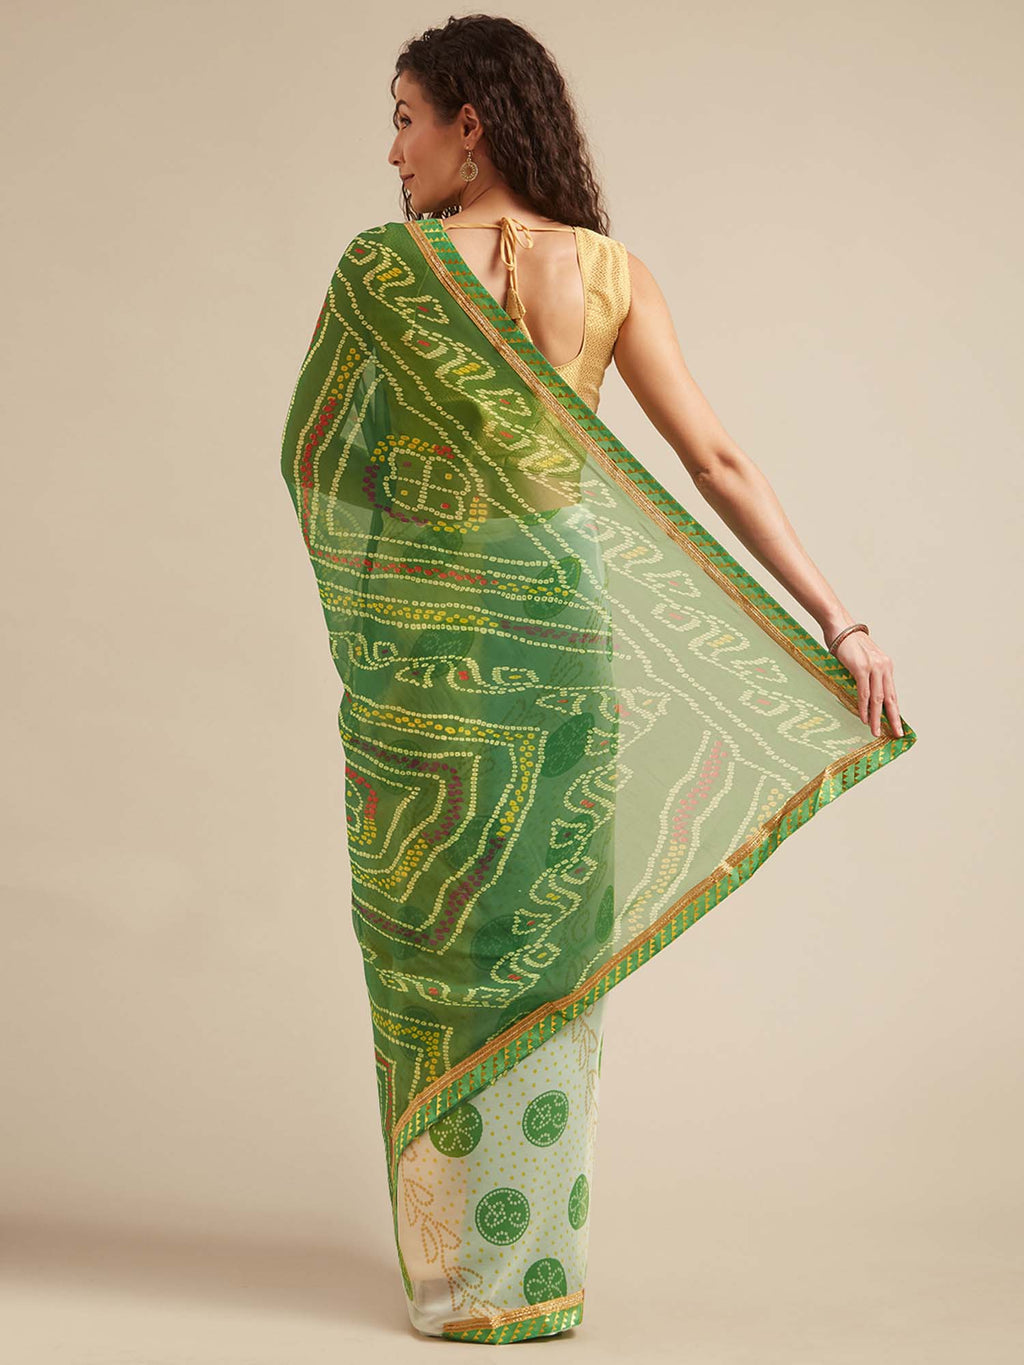 Off White and Green Poly Georgette Bandhani Design Saree with Printed Lace - Riviera Closet